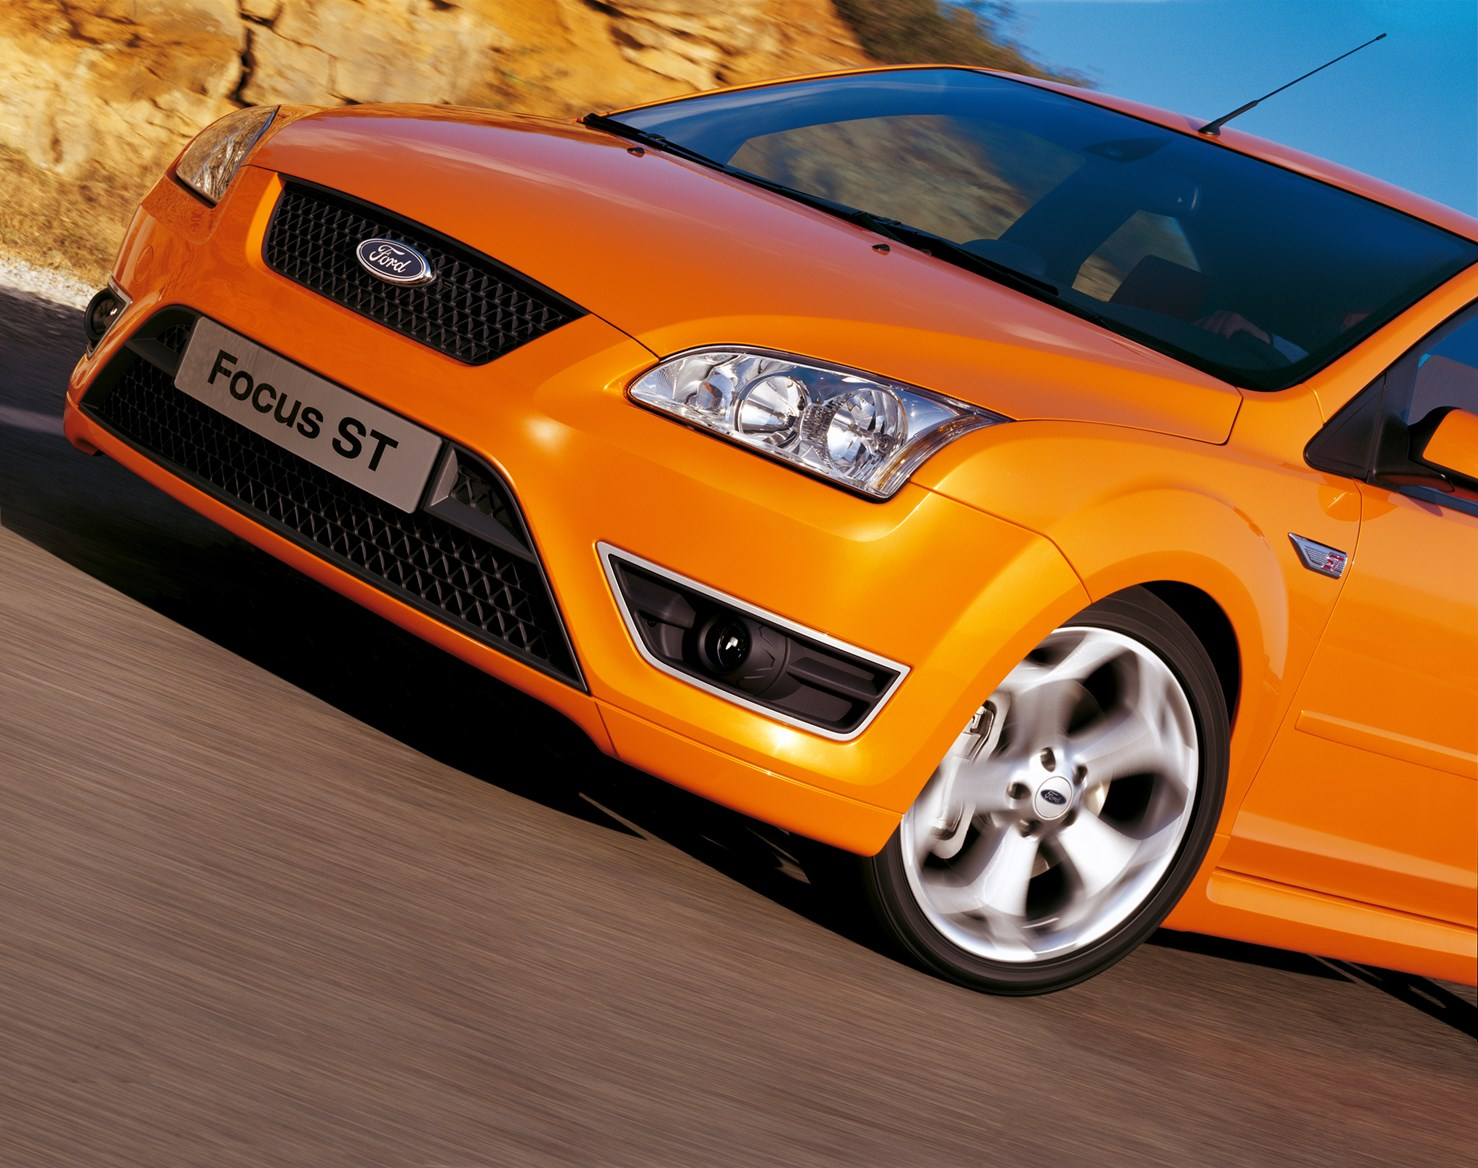 Used Ford Focus For Sale >> Ford Focus ST Review (2006 - 2010) | Parkers